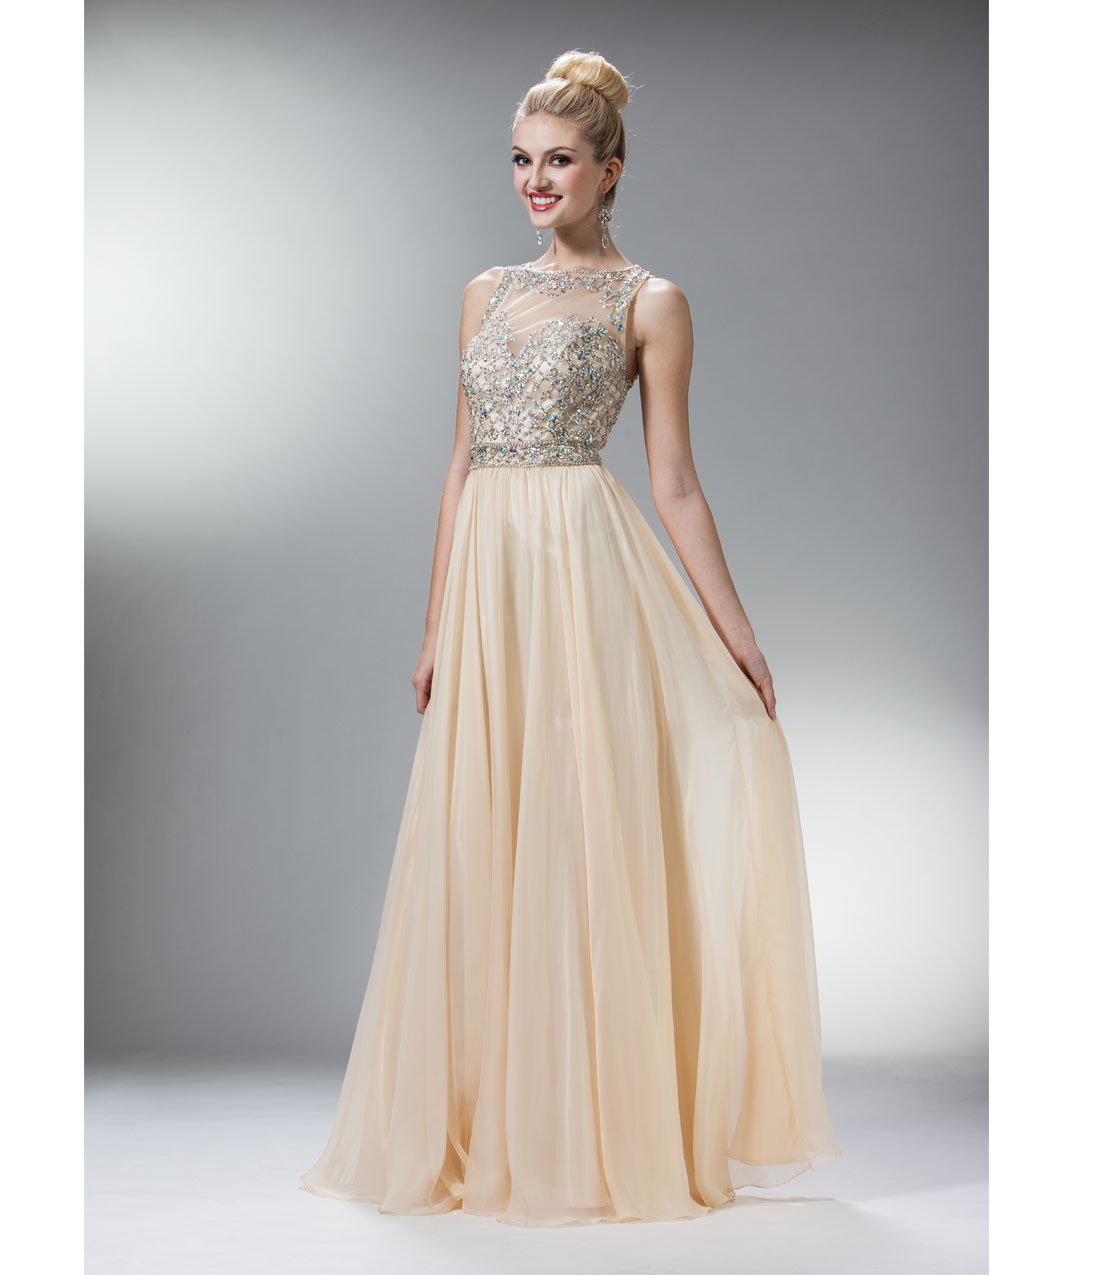 2014 Prom Dresses - Champagne Chiffon & Stone Criss Cross Gown - Unique Vintage - Prom dresses, retro dresses, retro swimsuits.